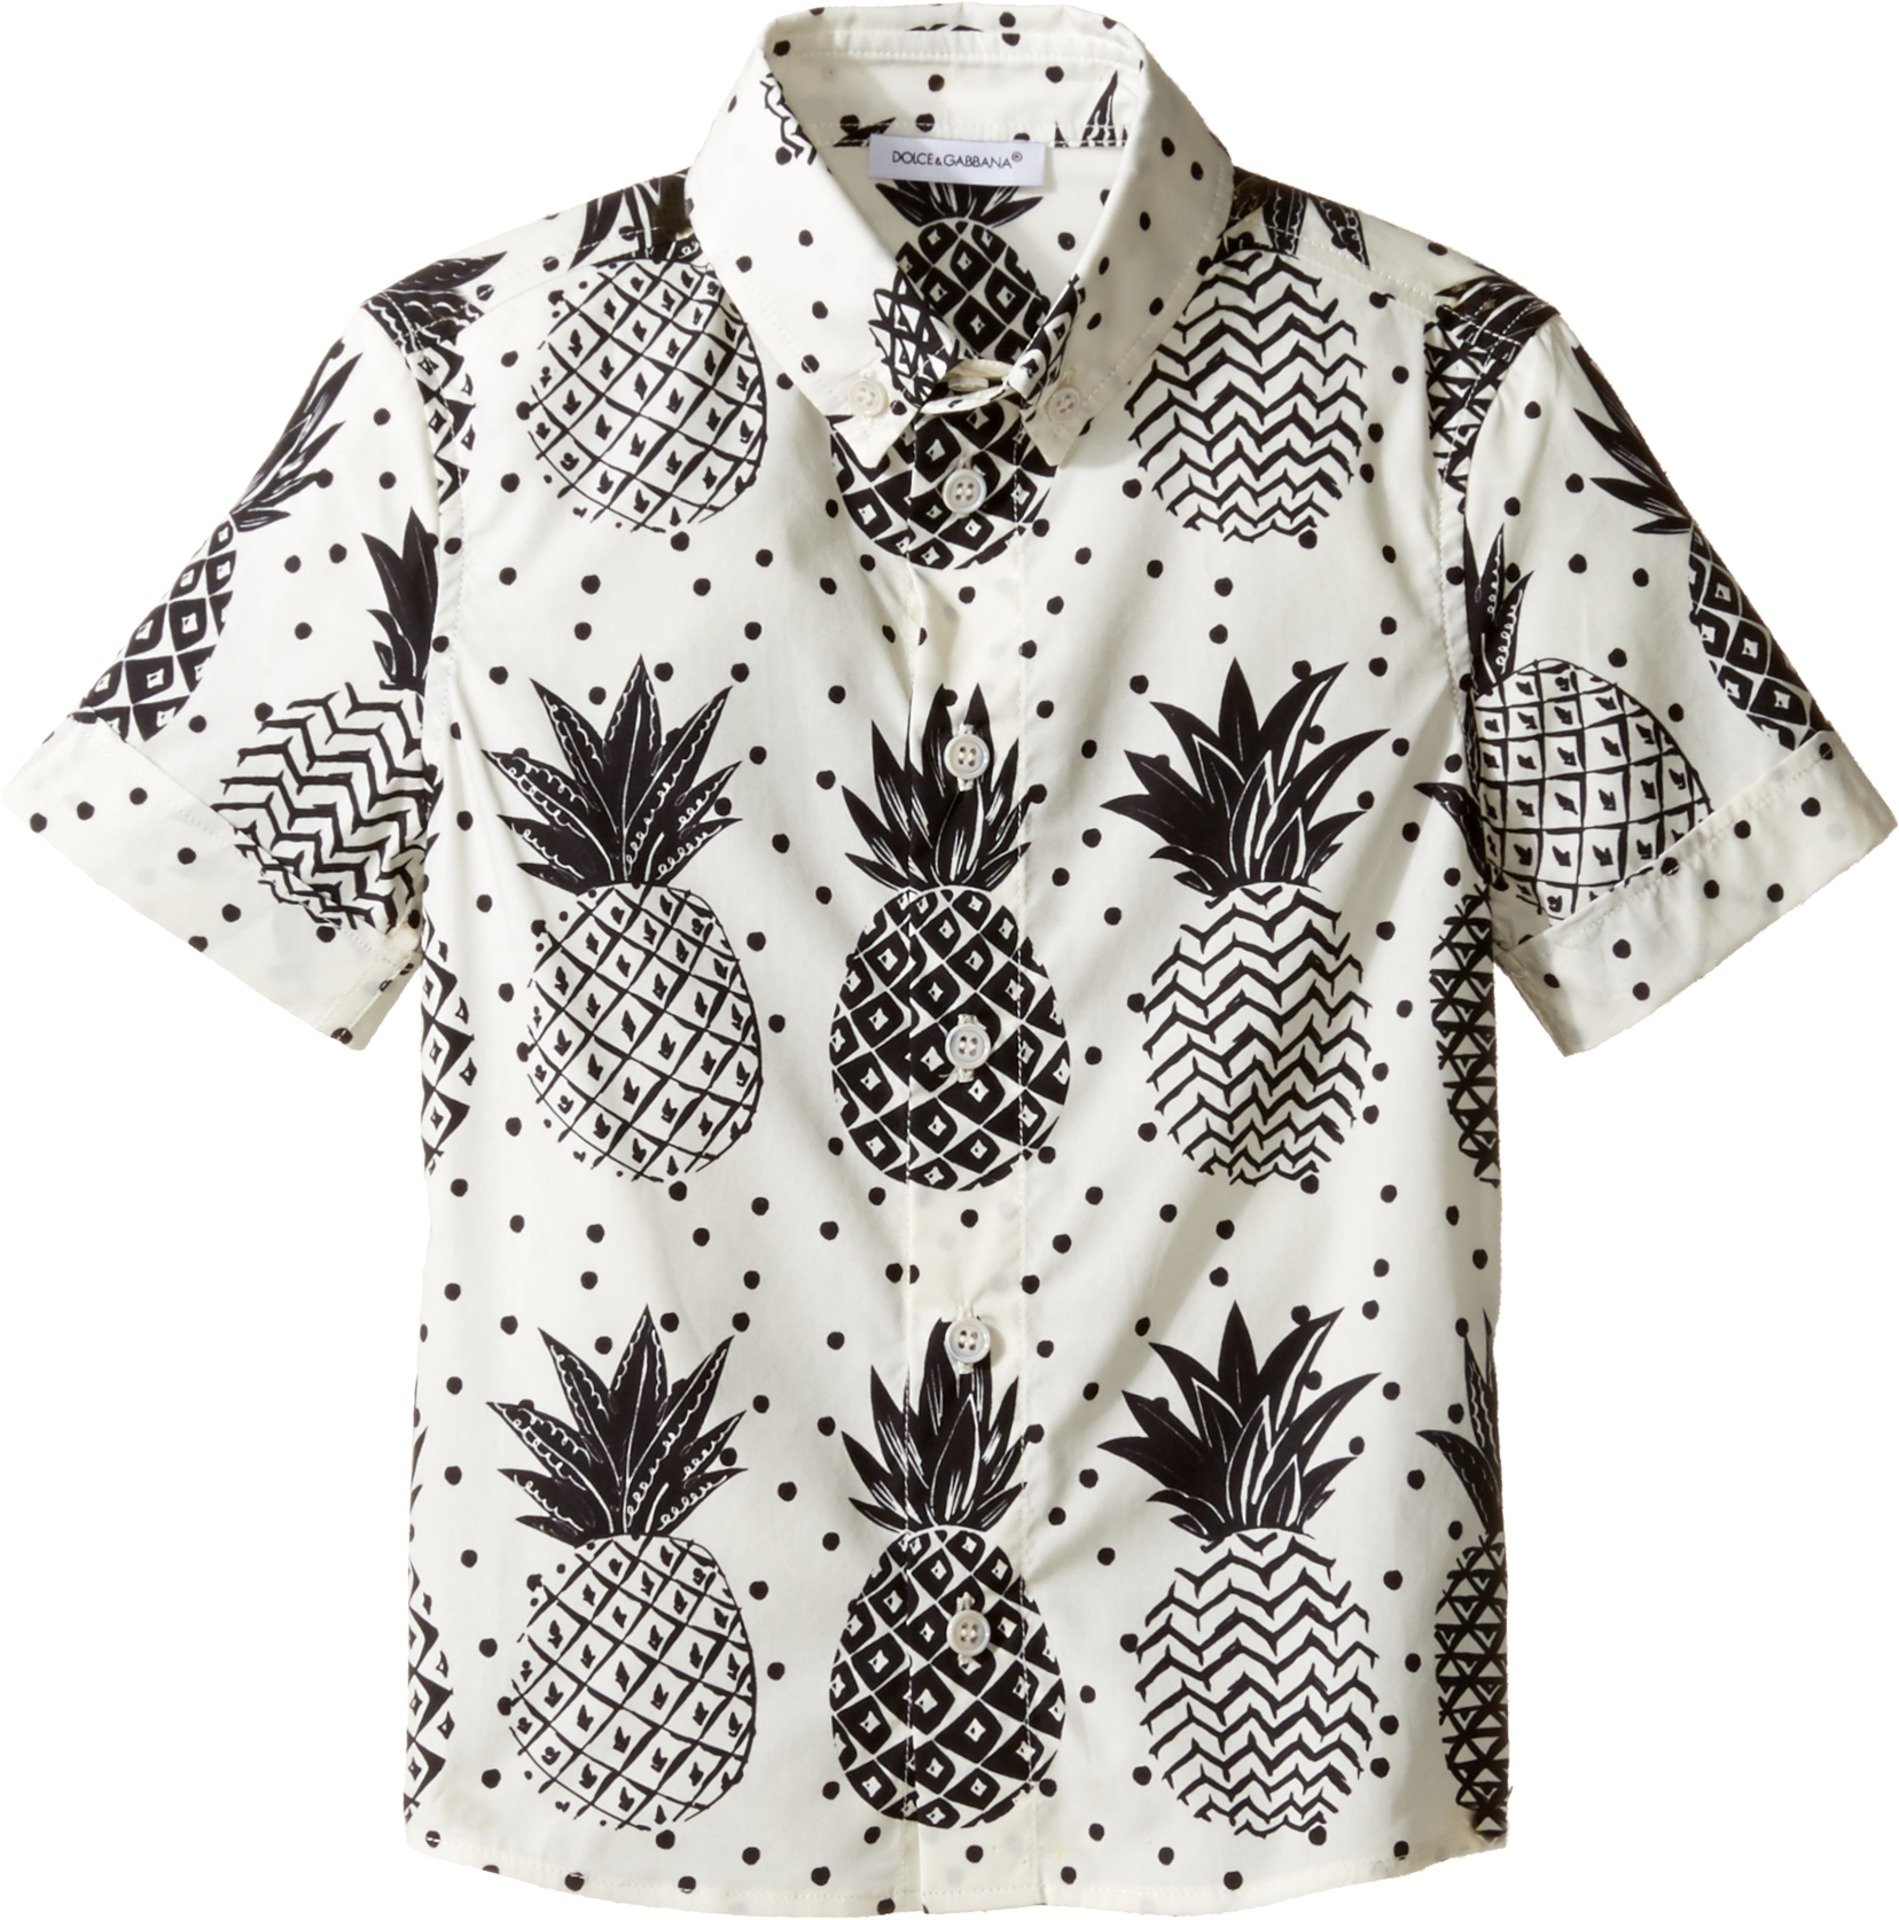 Dolce & Gabbana Kids Baby Boy's Pineapple Button Down (Toddler/Little Kids) White Print Button-up Shirt by Dolce & Gabbana